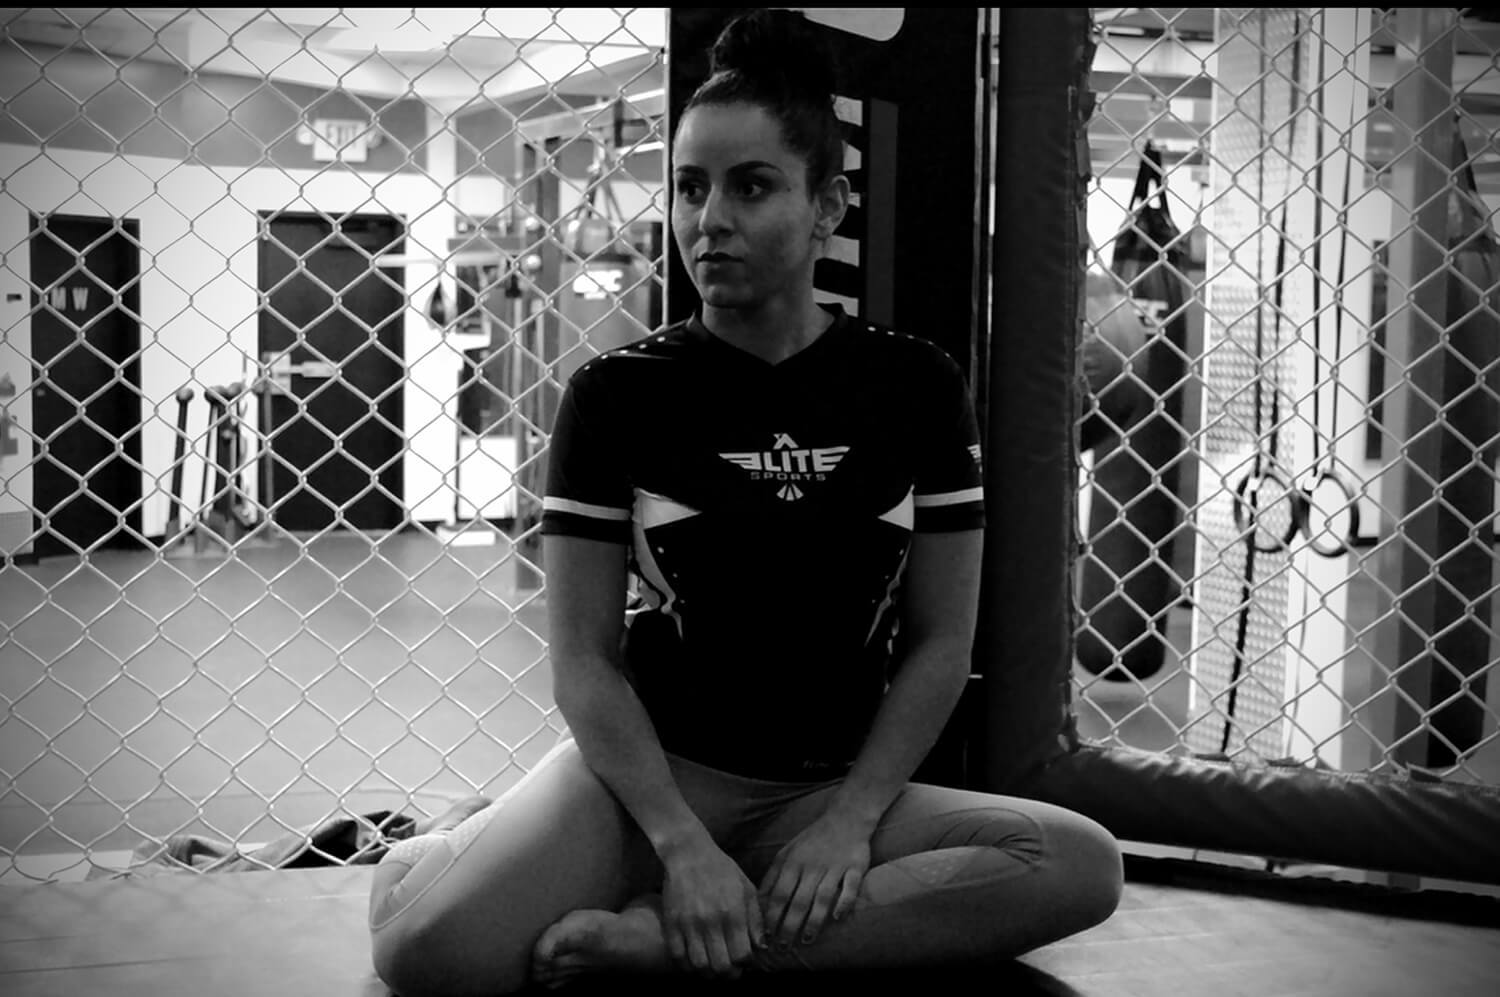 Elite-sports-Team-Elite-NO GI-Andria-Torrez-image3.jpeg